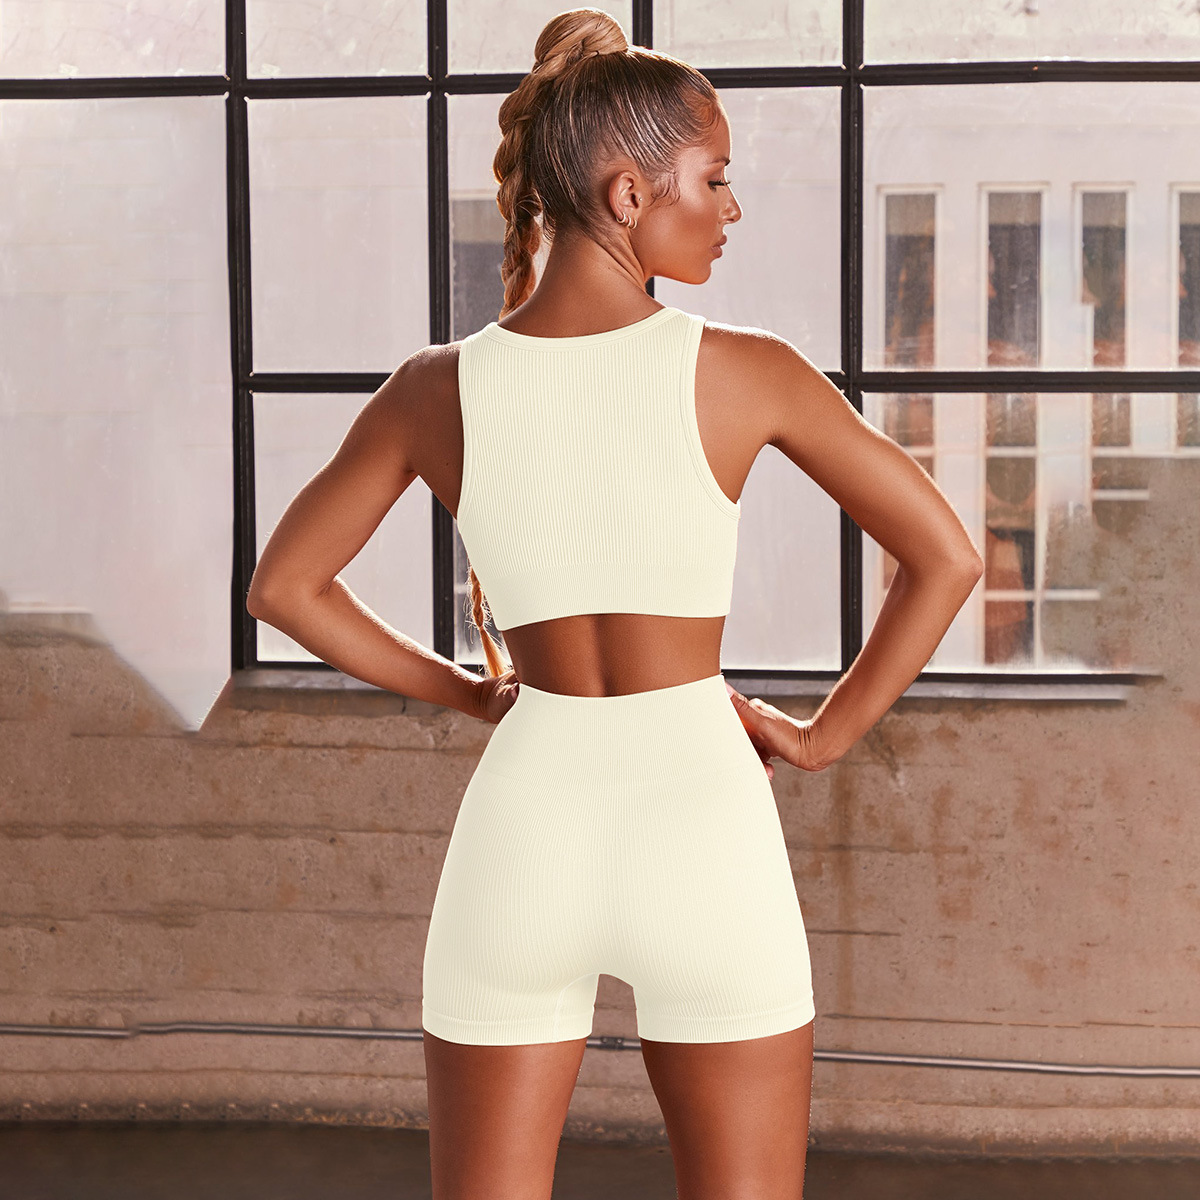 seamless knitted sexy sports short-sleeved shorts yoga set NSNS58159